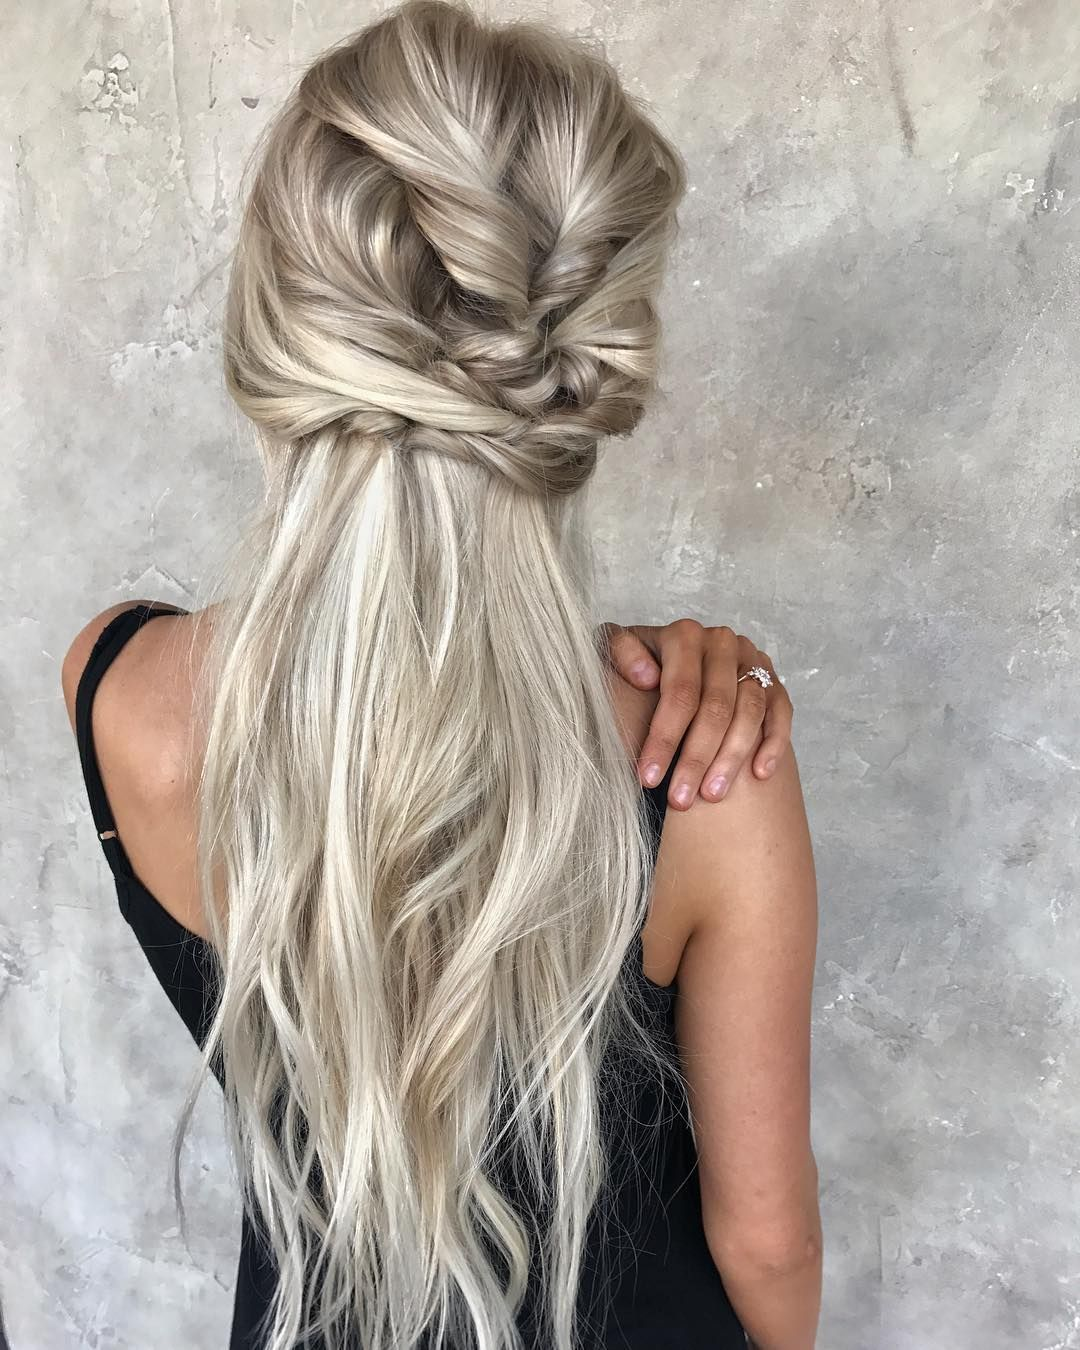 Messy Braided Hairstyle With Long Hair Women Long Hairstyles For Summer Long Hair Styles Braids For Long Hair Hair Styles